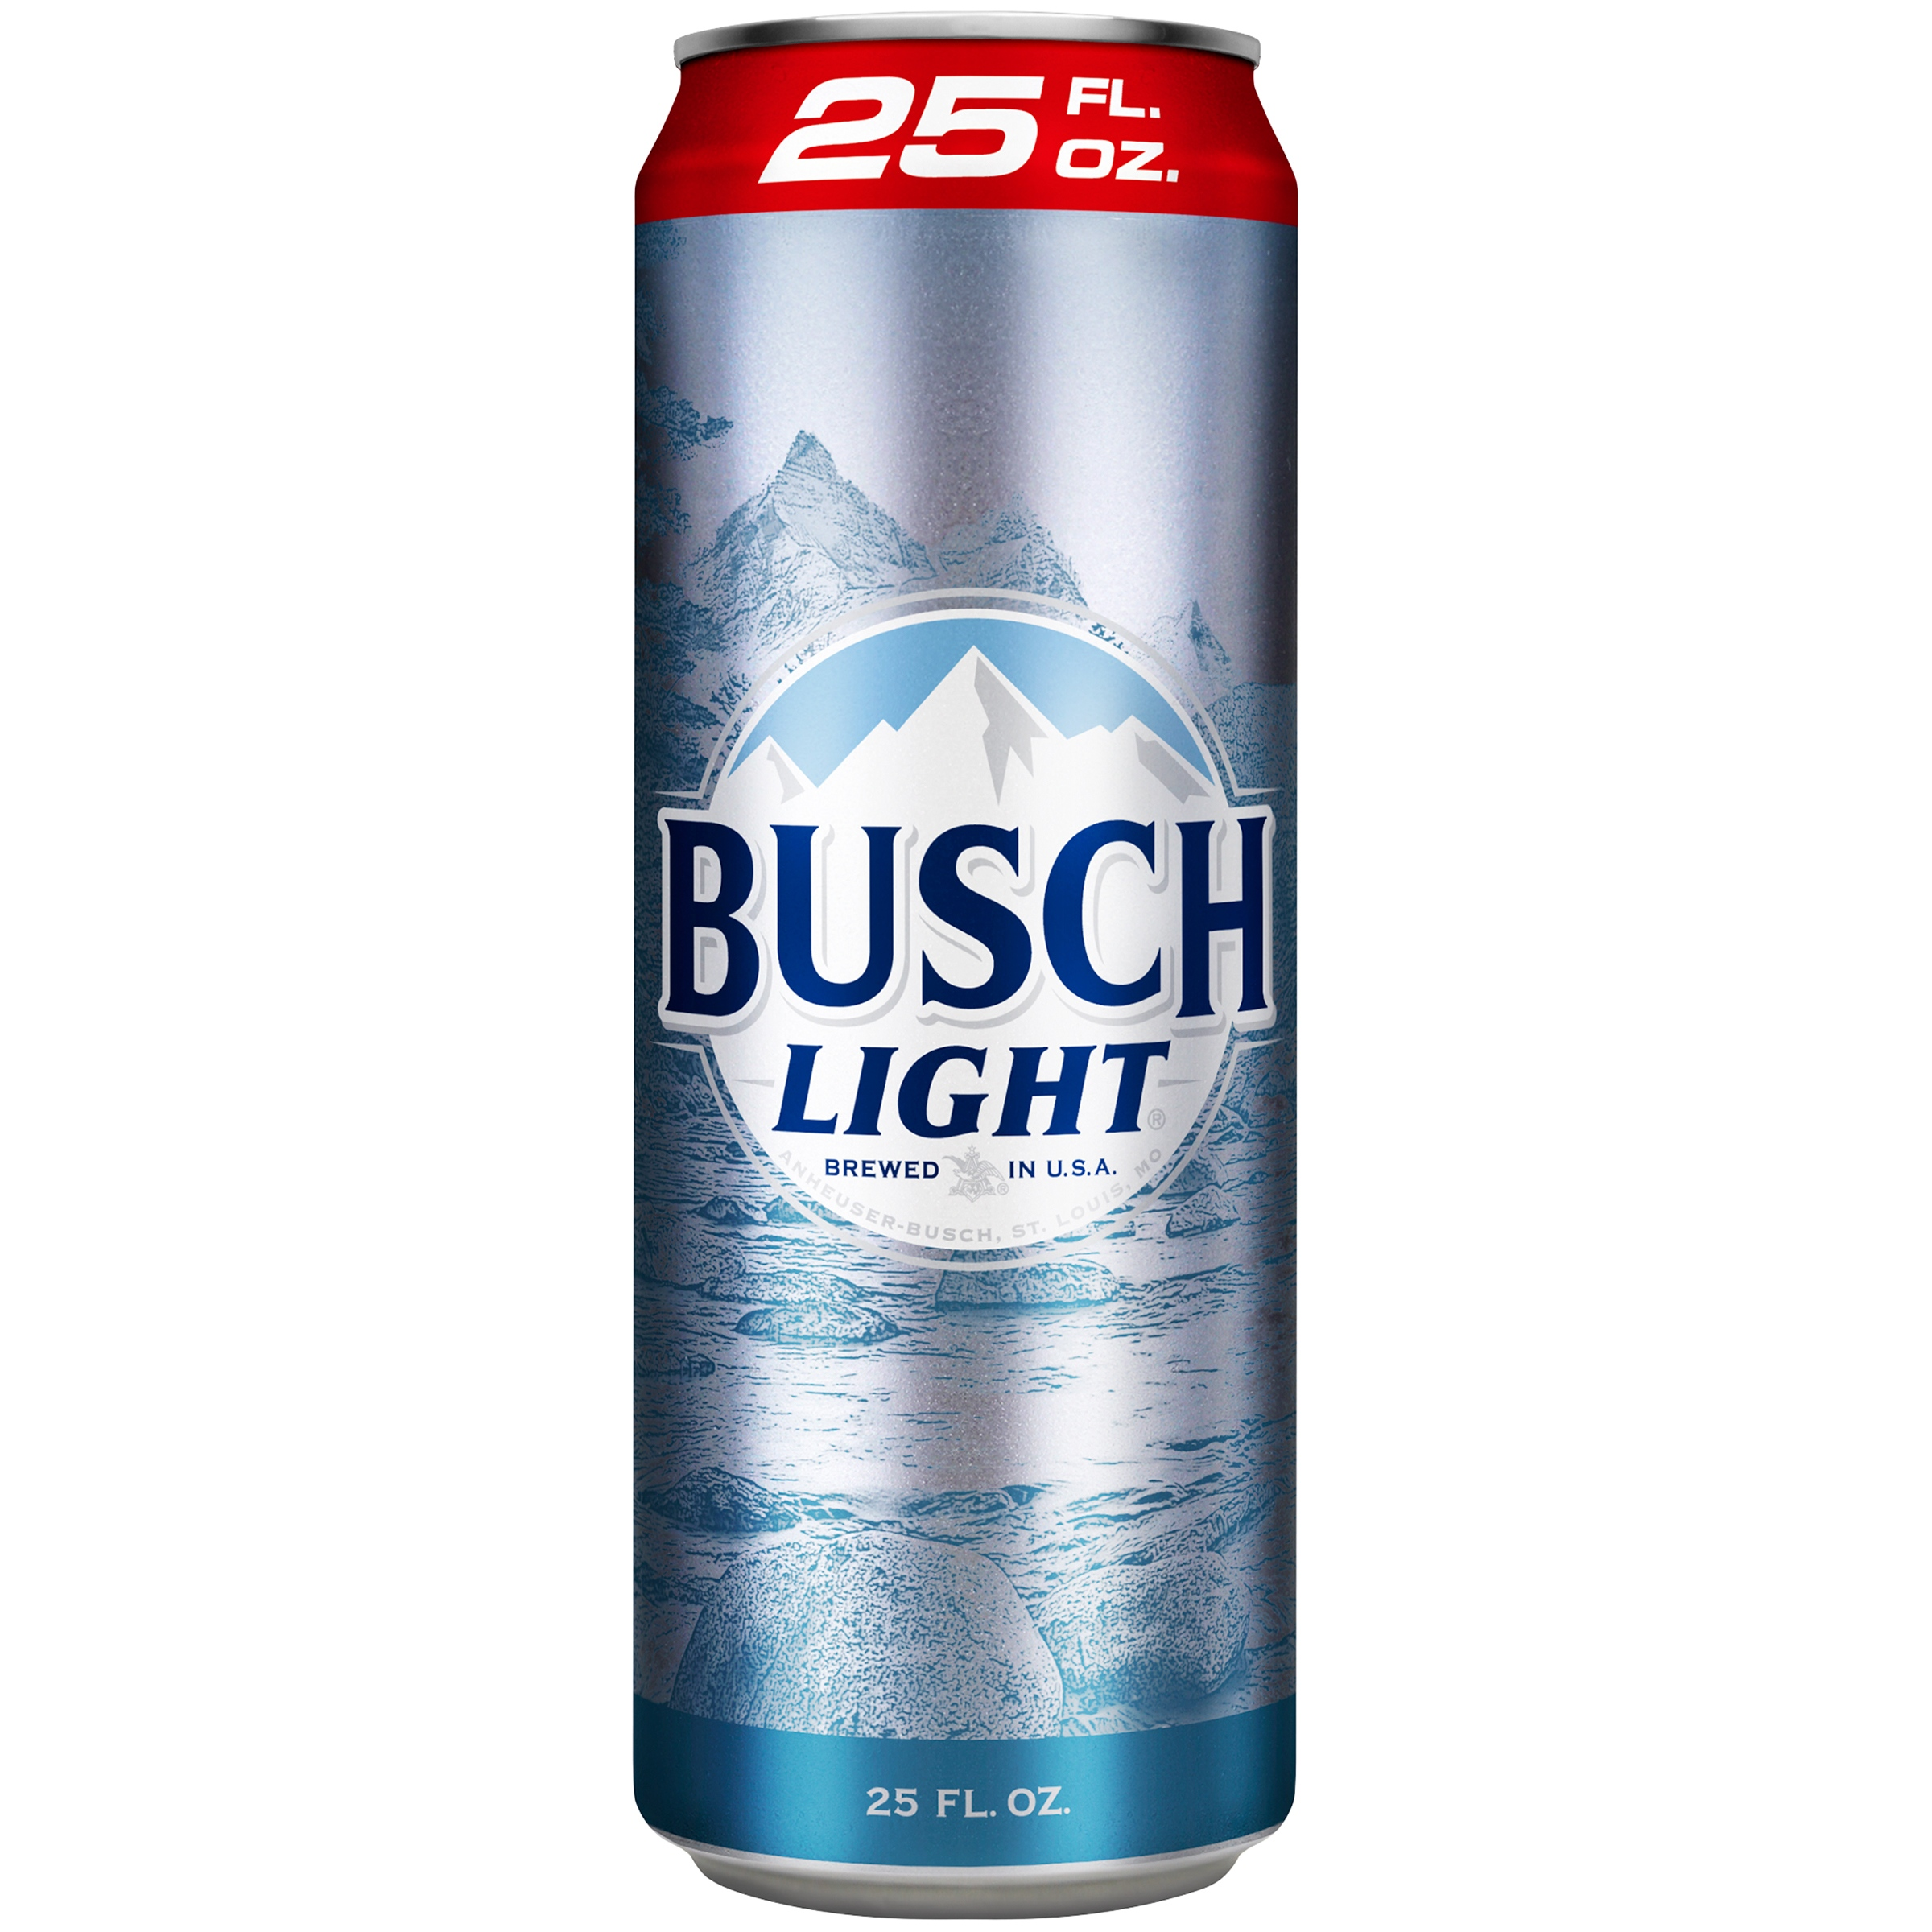 Busch Light Beer, 25 fl. oz. Can